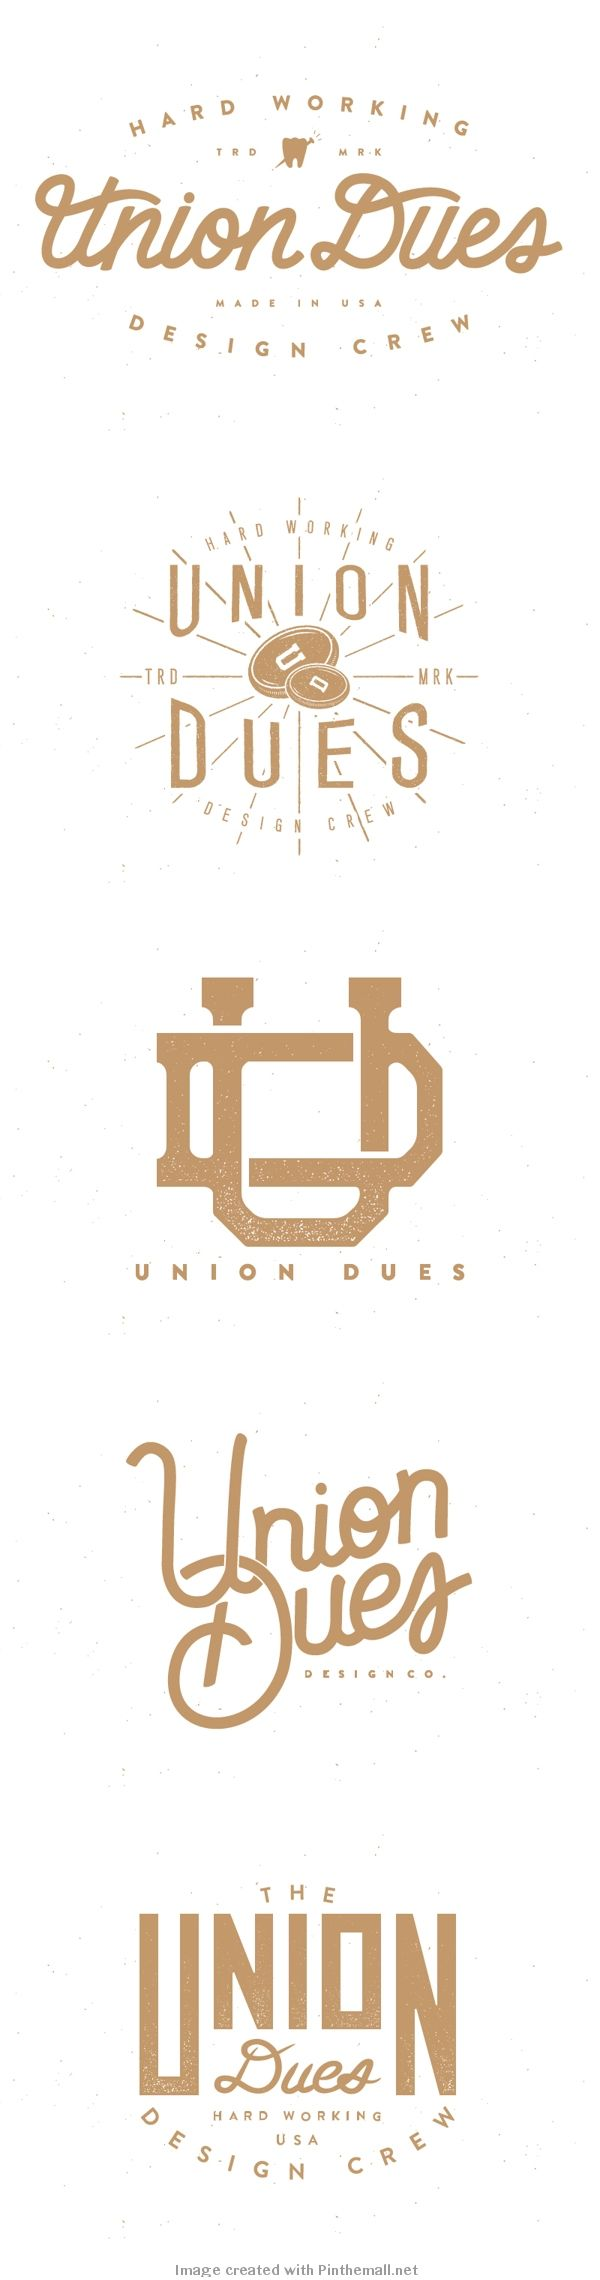 Logo type design hand lettering gold white vintage union dues